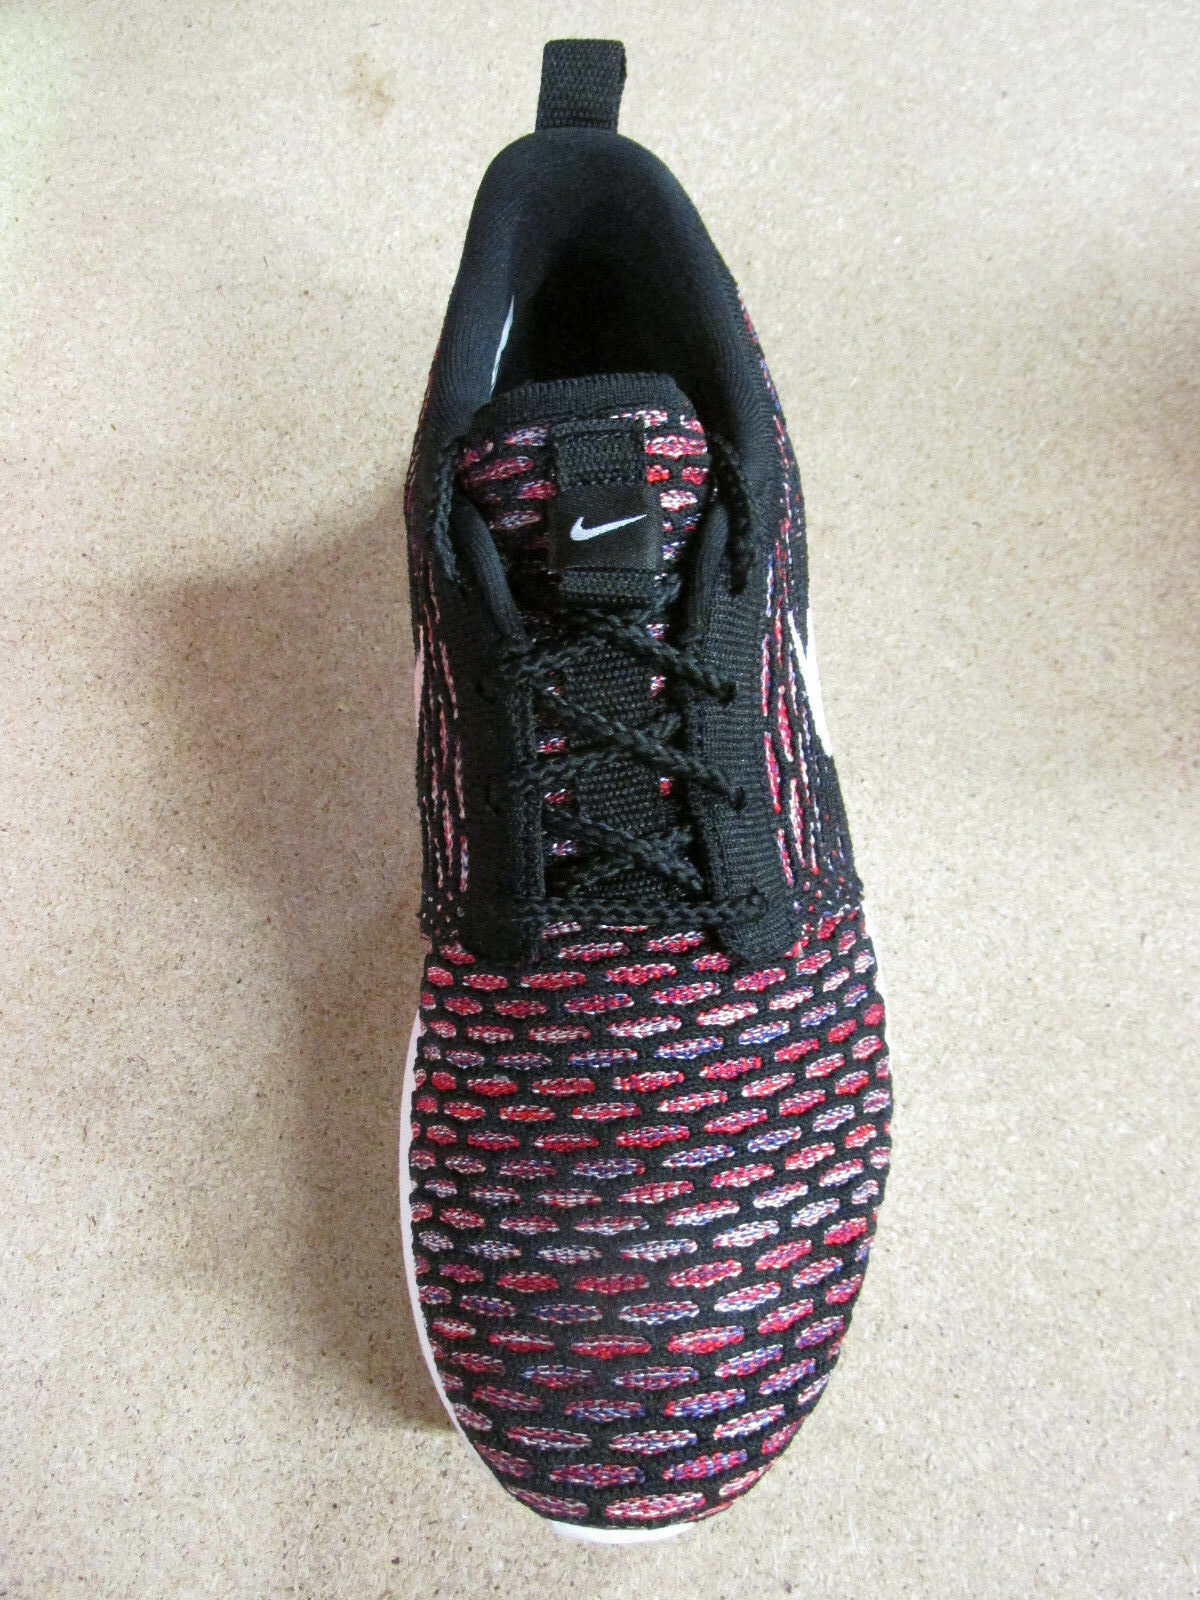 nike flyknit rosherun Hombre running trainers 677243 016 016 016 sneakers Zapatos 8d7661